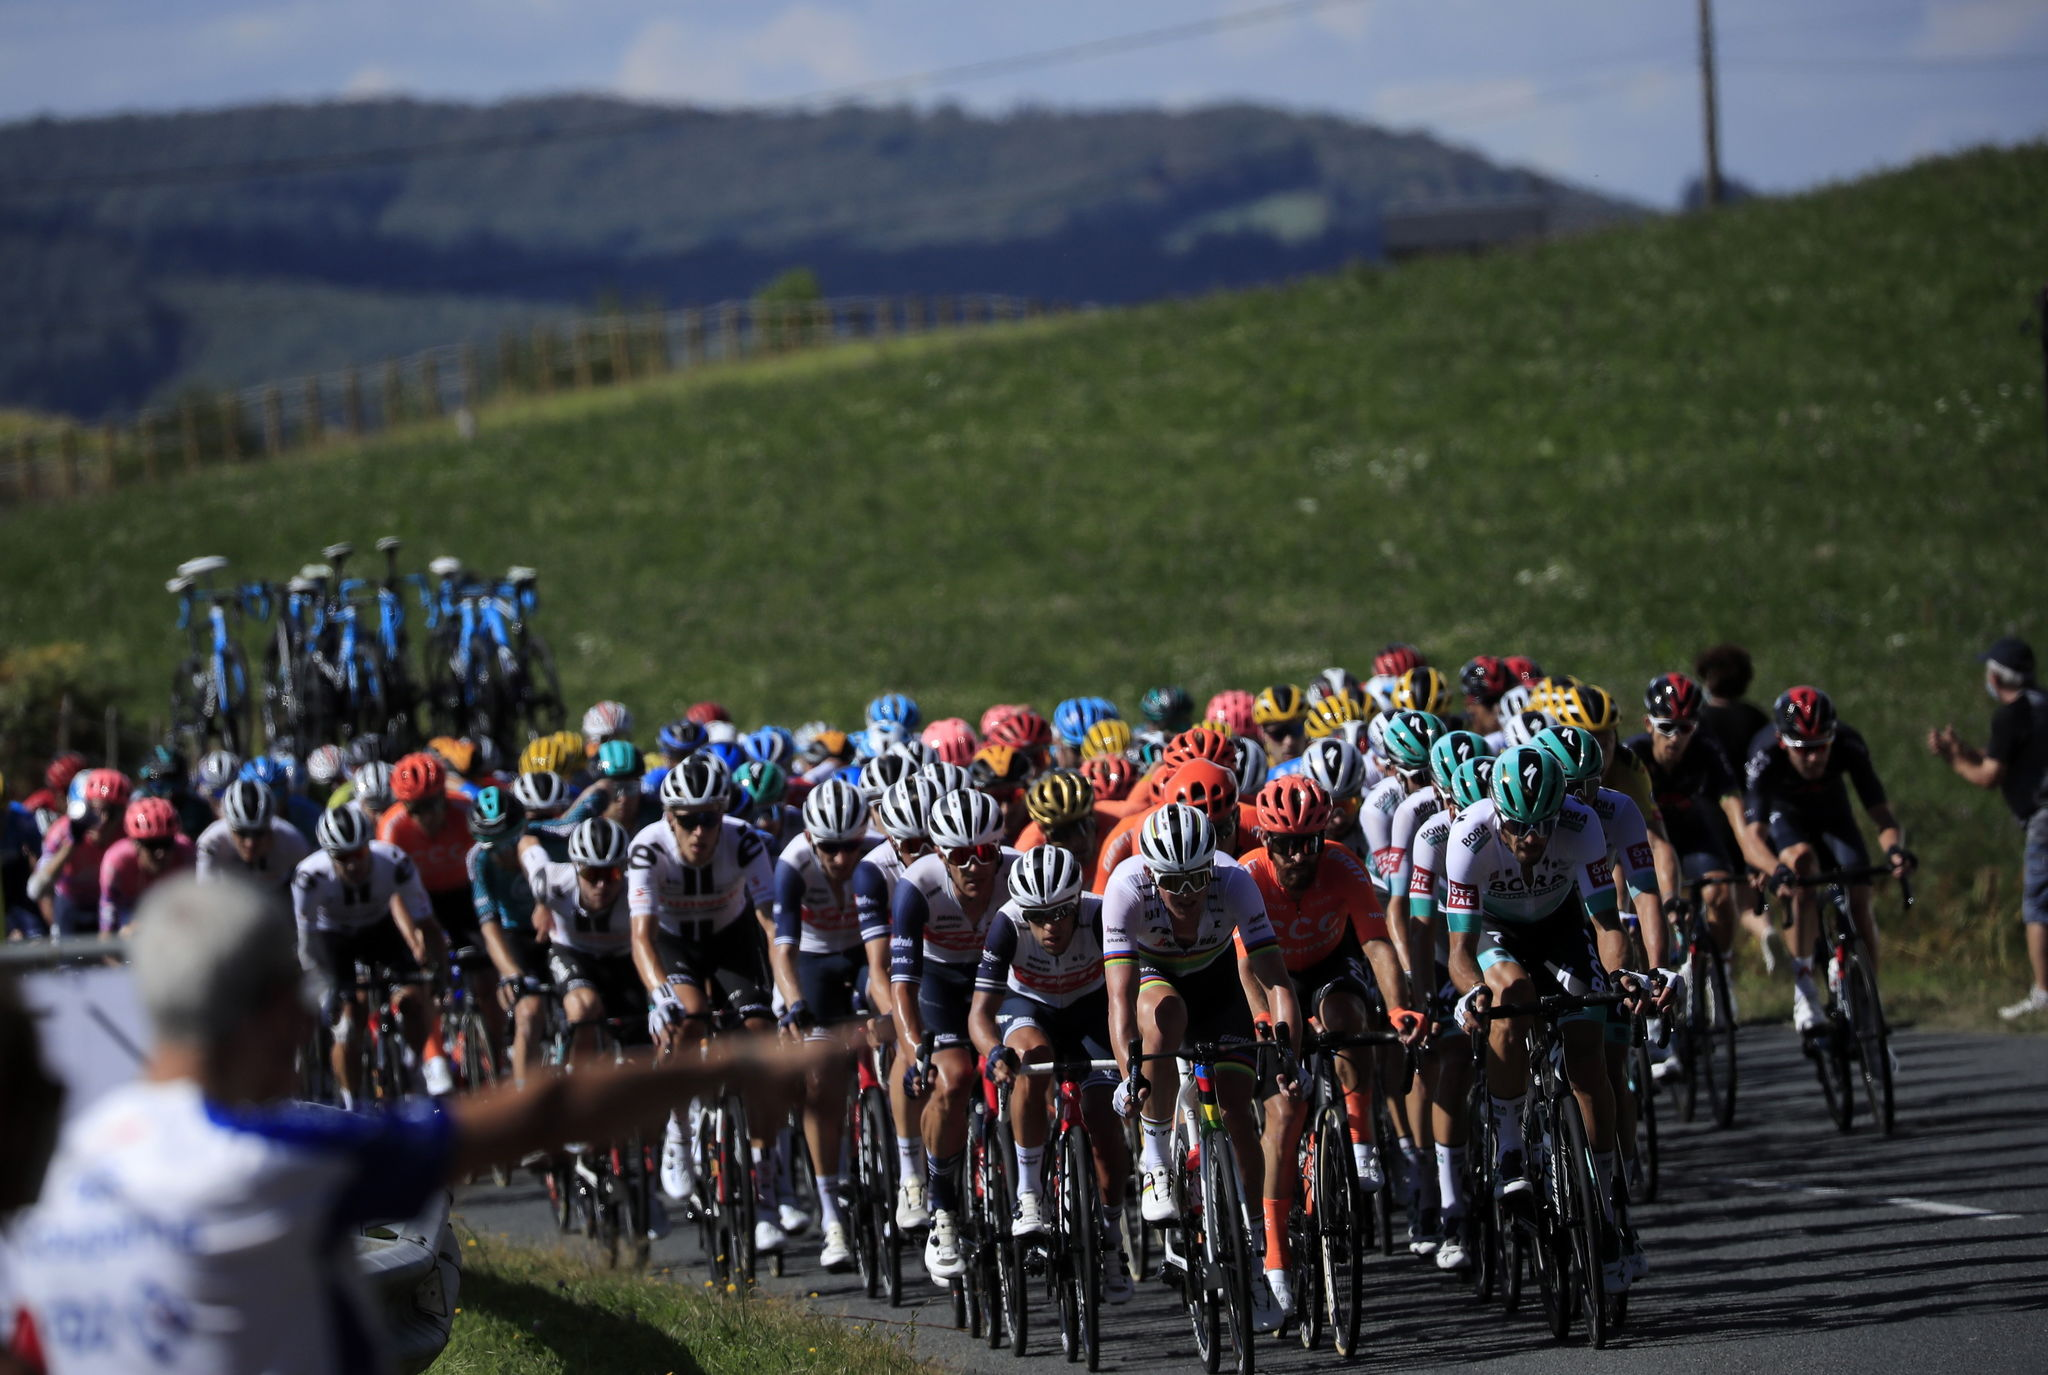 Sarran (France), 10/09/2020.- The peloton in action during the 12th stage of the lt;HIT gt;Tour lt;/HIT gt; de France cycling race over 218km from Chauvigny to Sarran, France, 10 September 2020. (Ciclismo, Francia) EFE/EPA/CHRISTOPHE PETIT TESSON